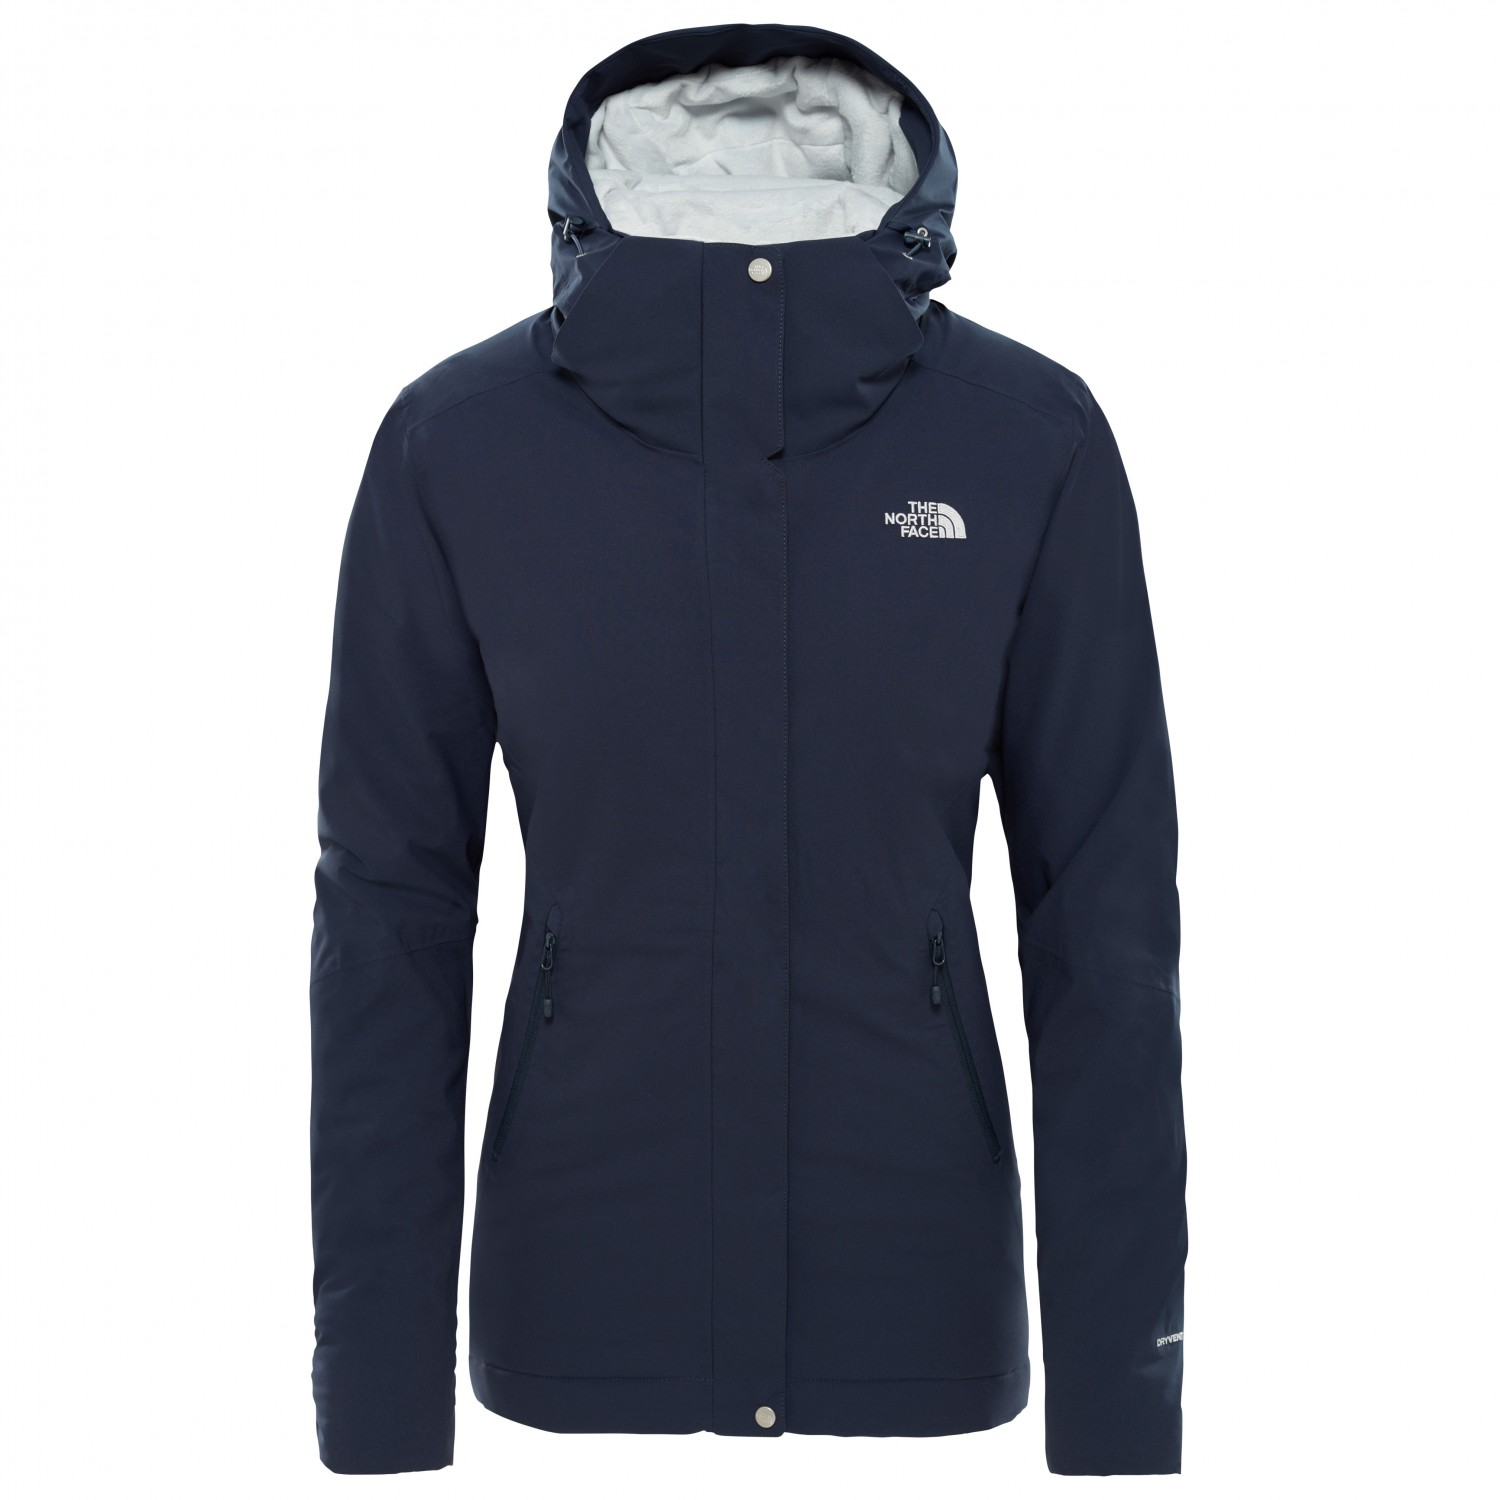 def400f245 ... The North Face - Women's Inlux Insulated Jacket - Winterjacke ...